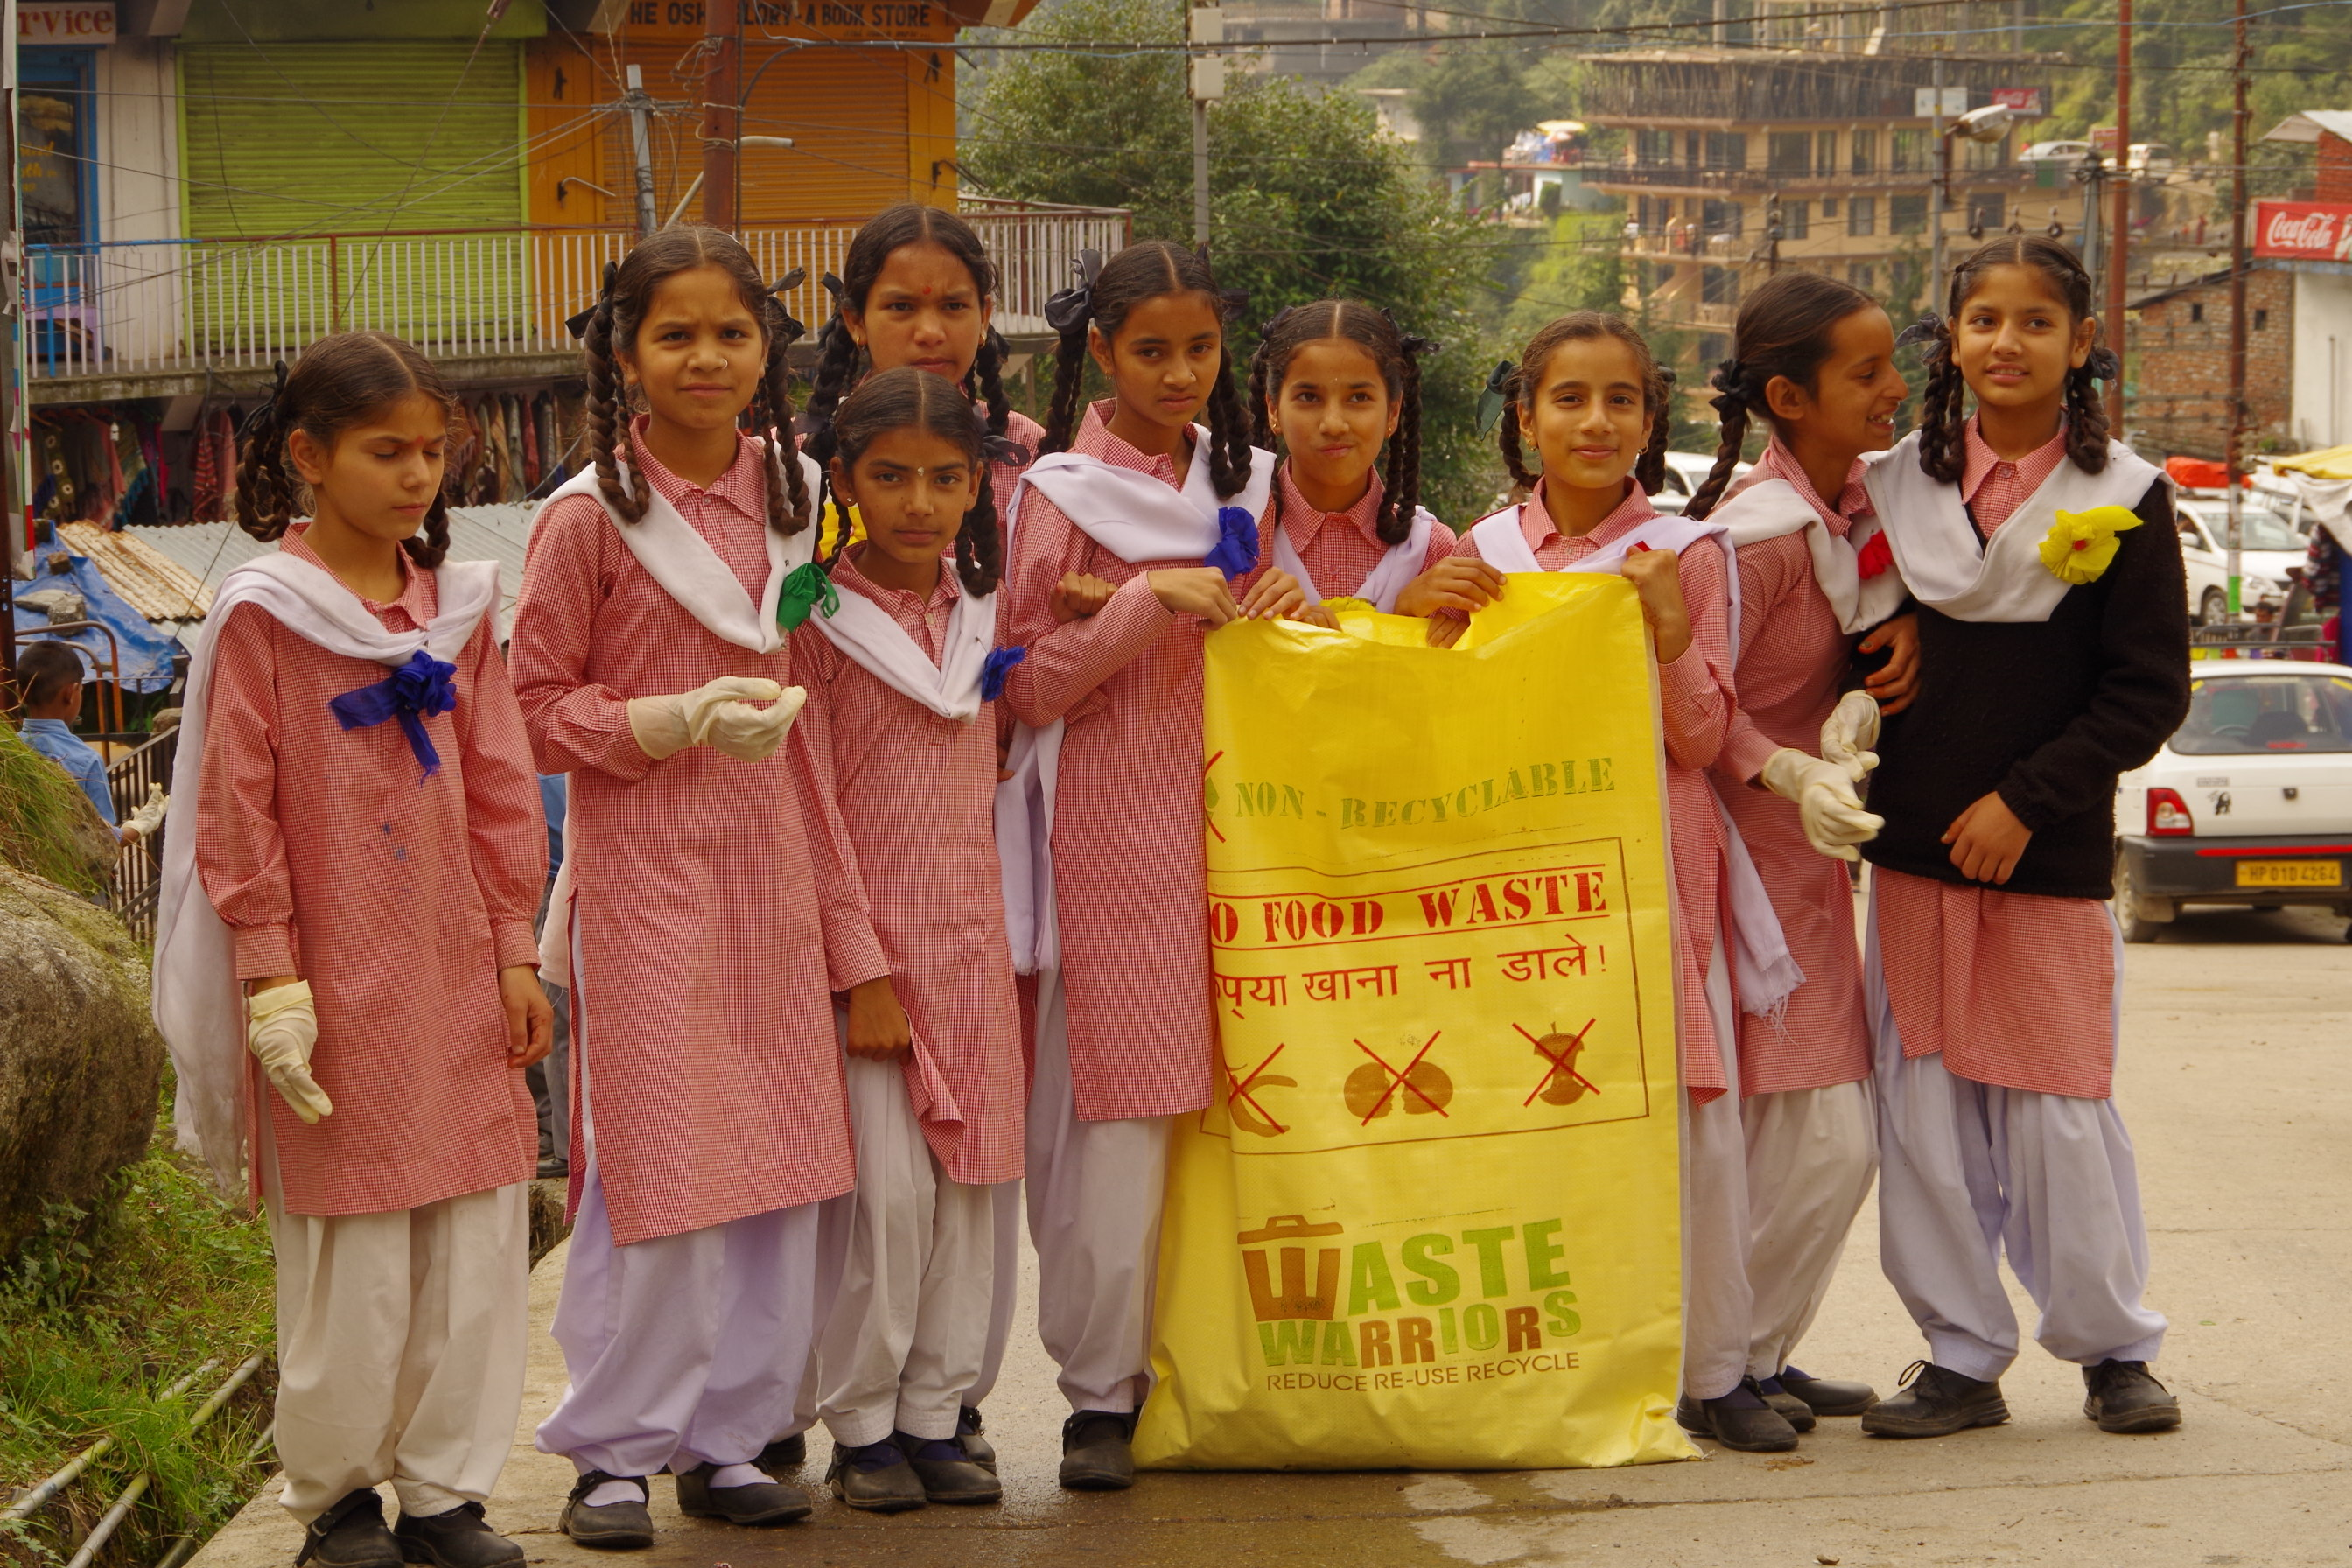 School children ready to begin a community clean-up session